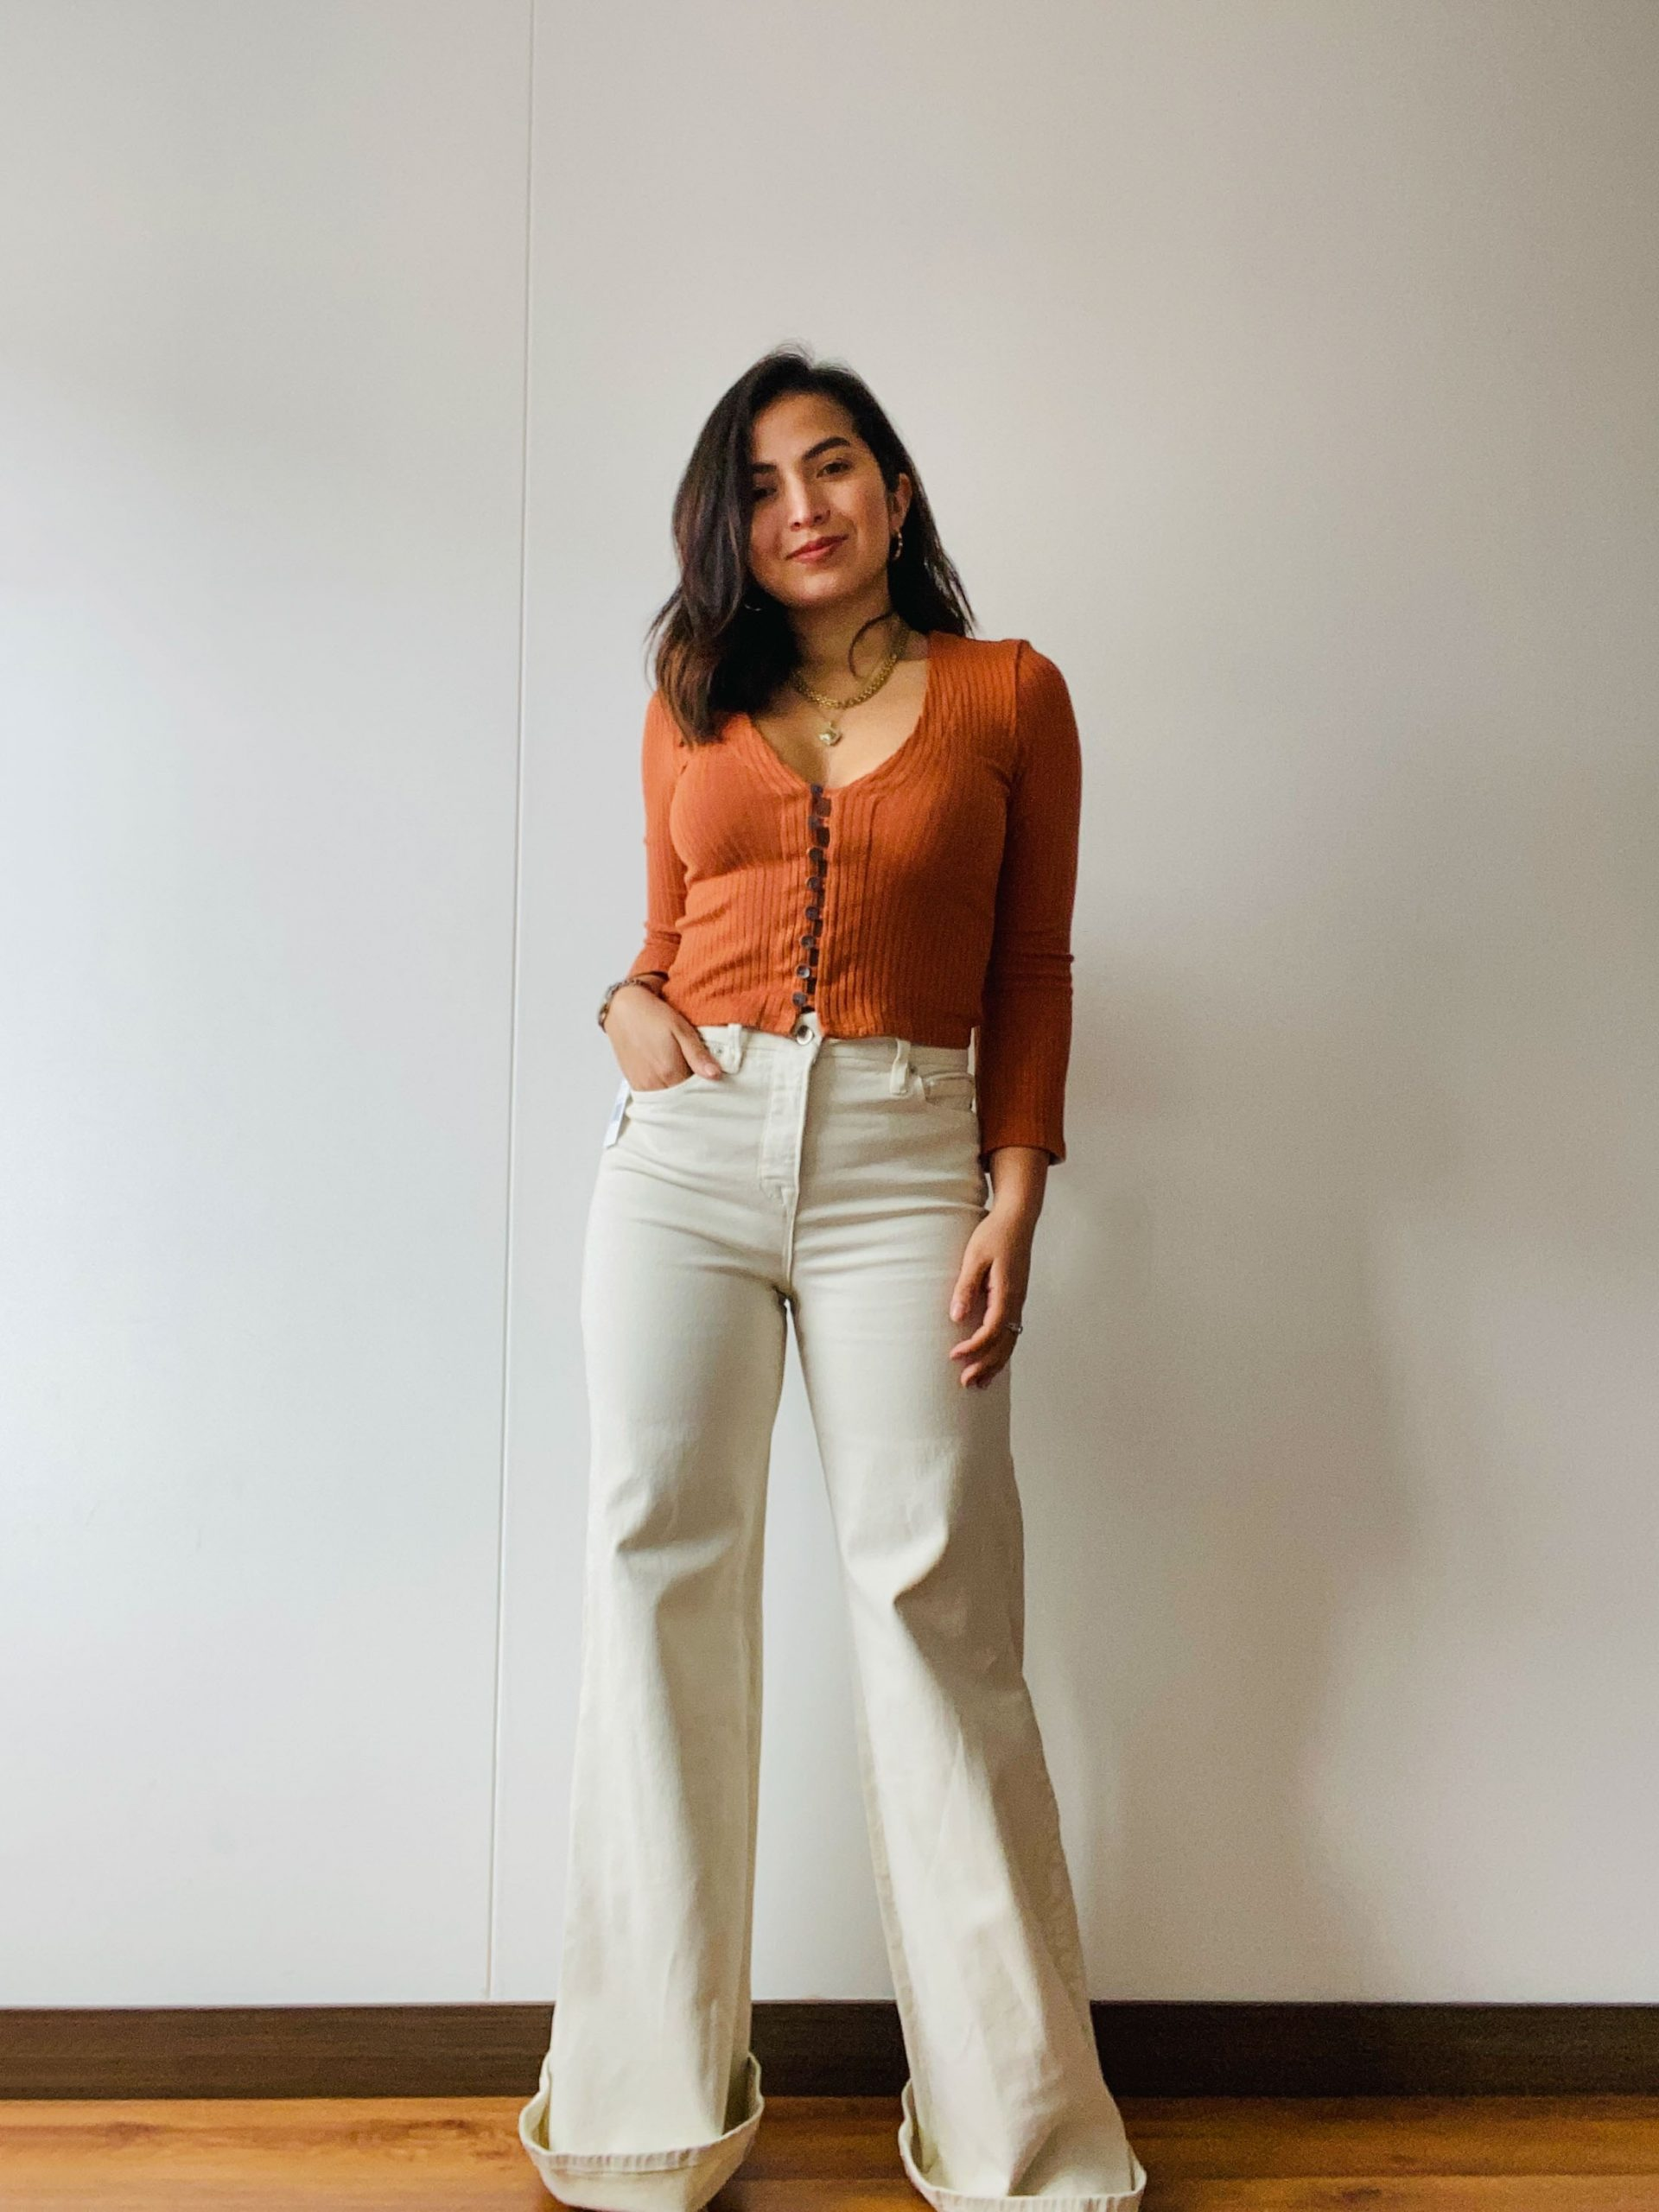 With an ultra high-rise + a flared, wide-leg silhouette, we thought it'd be fun to see how Good American's Good Waist Palazzo Jeans fit ALL of us.